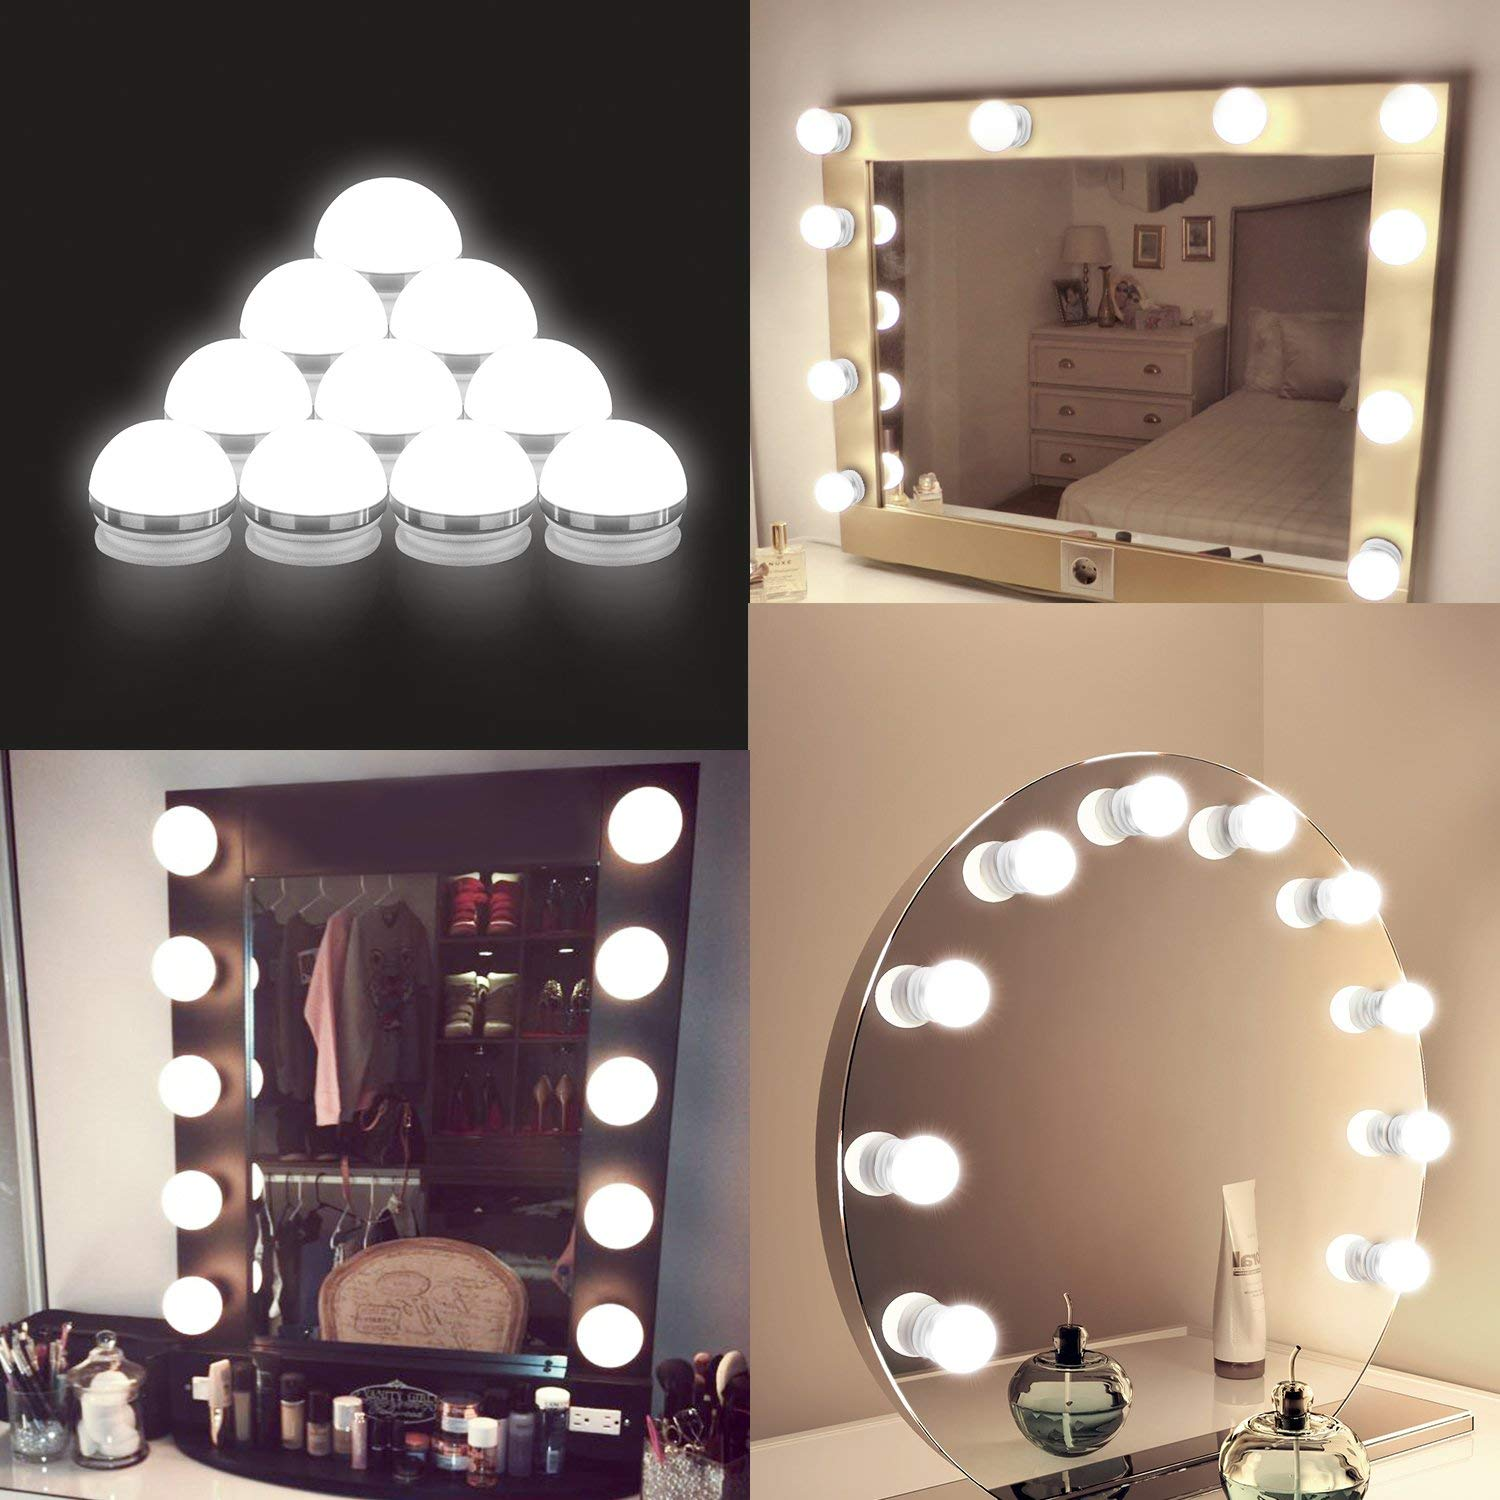 Us 8 99 30 Off Hollywood Style Usb Led Vanity Mirror Lights Kit Dimmable Bulbs And Touch Dimmer For Makeup Table Set In Dressing Room